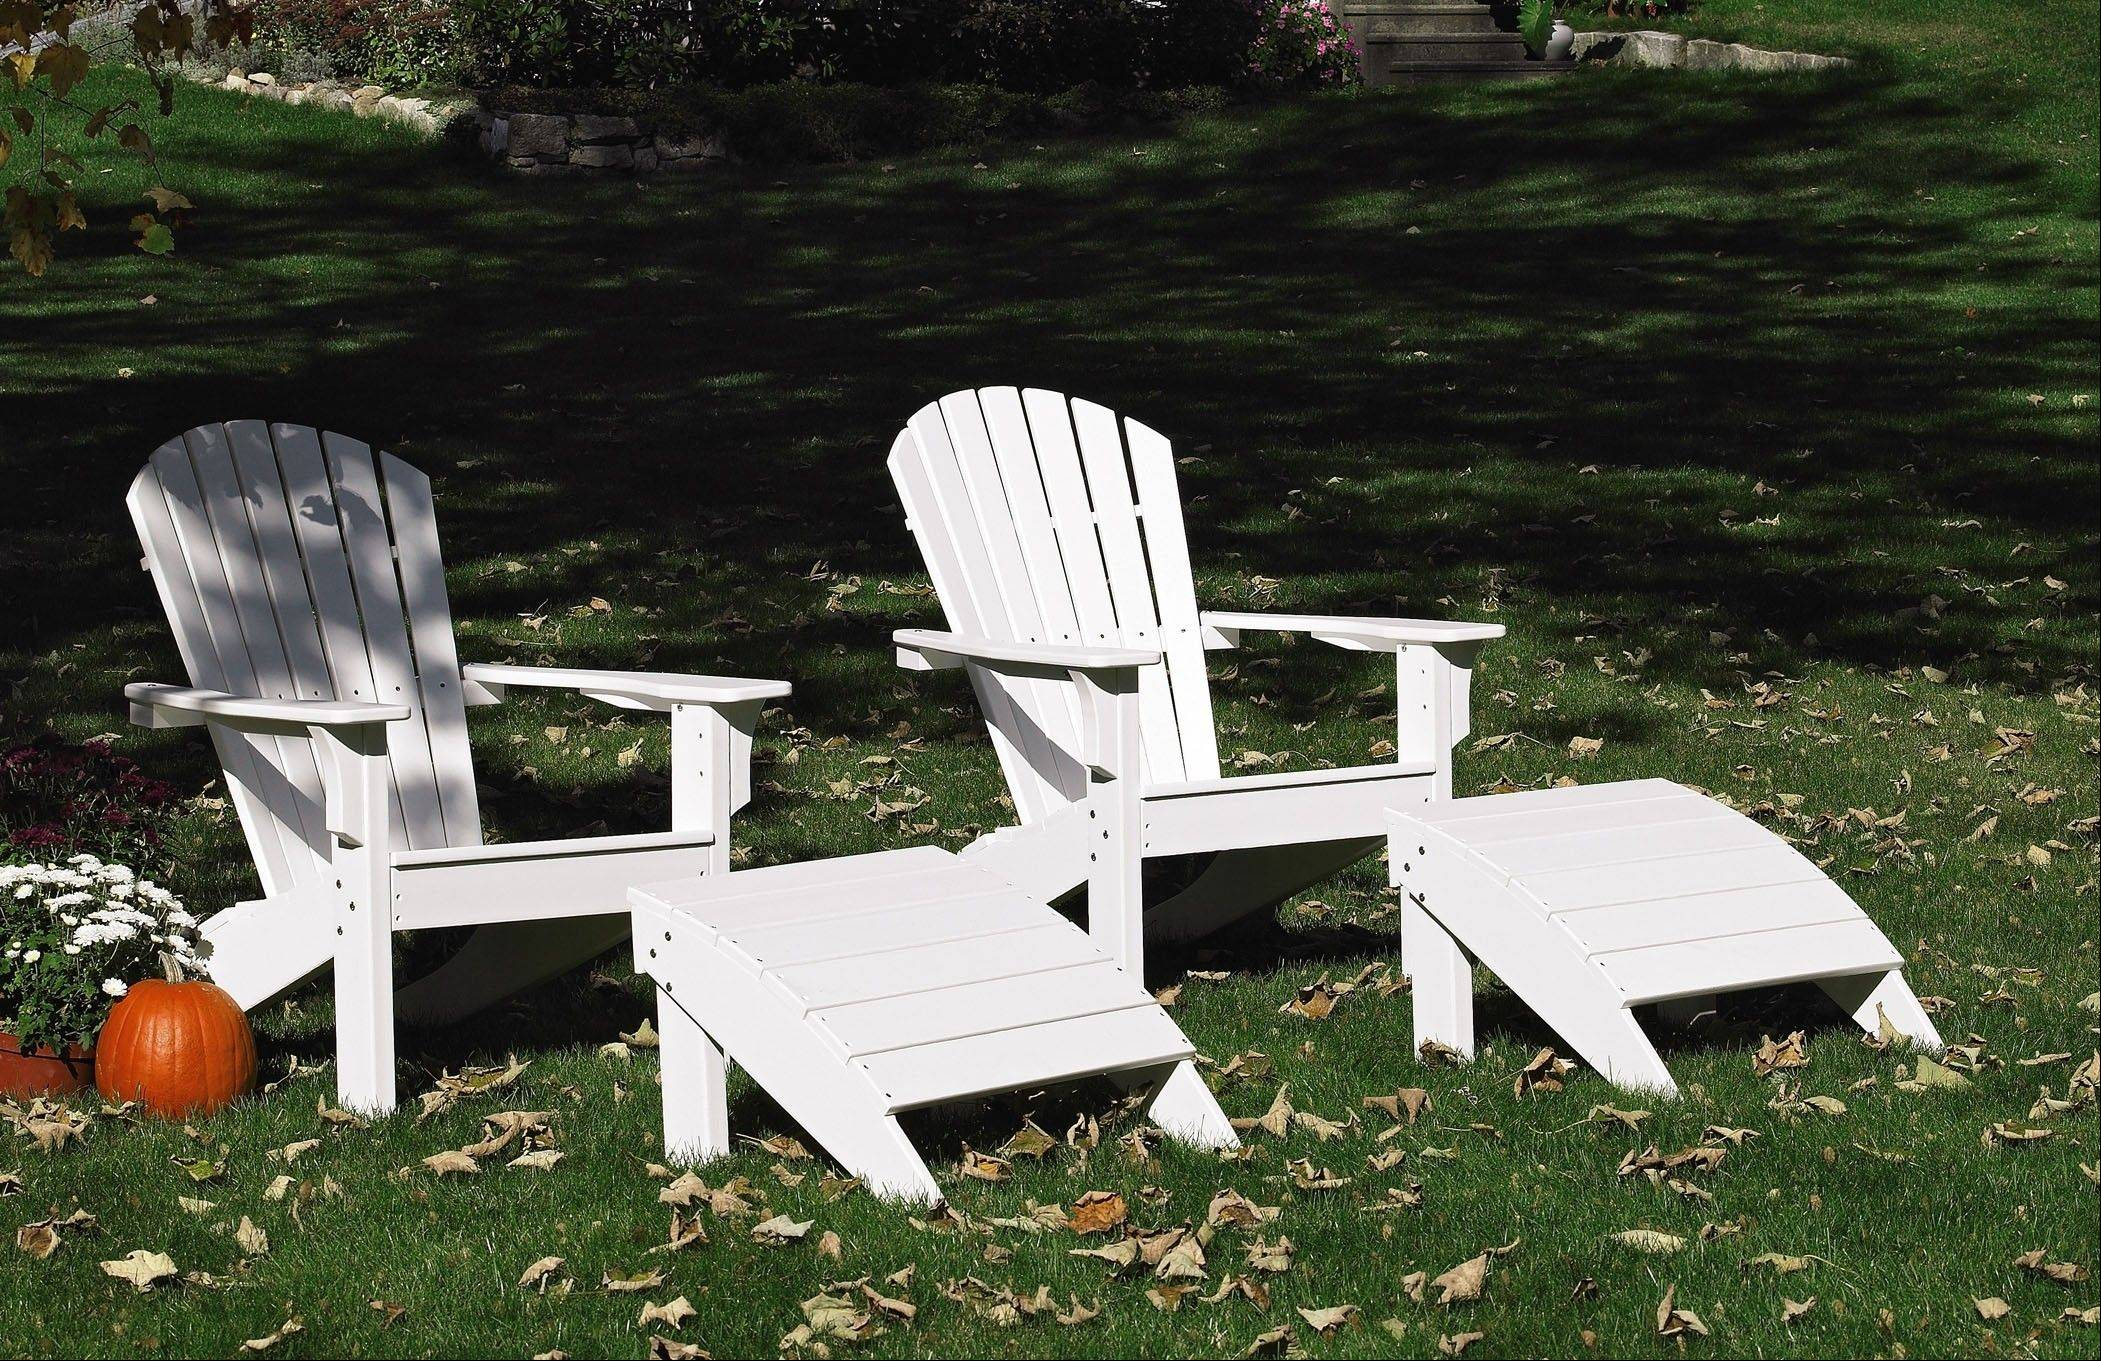 Seaside Casual Furniture makes its Adirondack chairs a little higher than the traditional style to make it easier to get in and out.